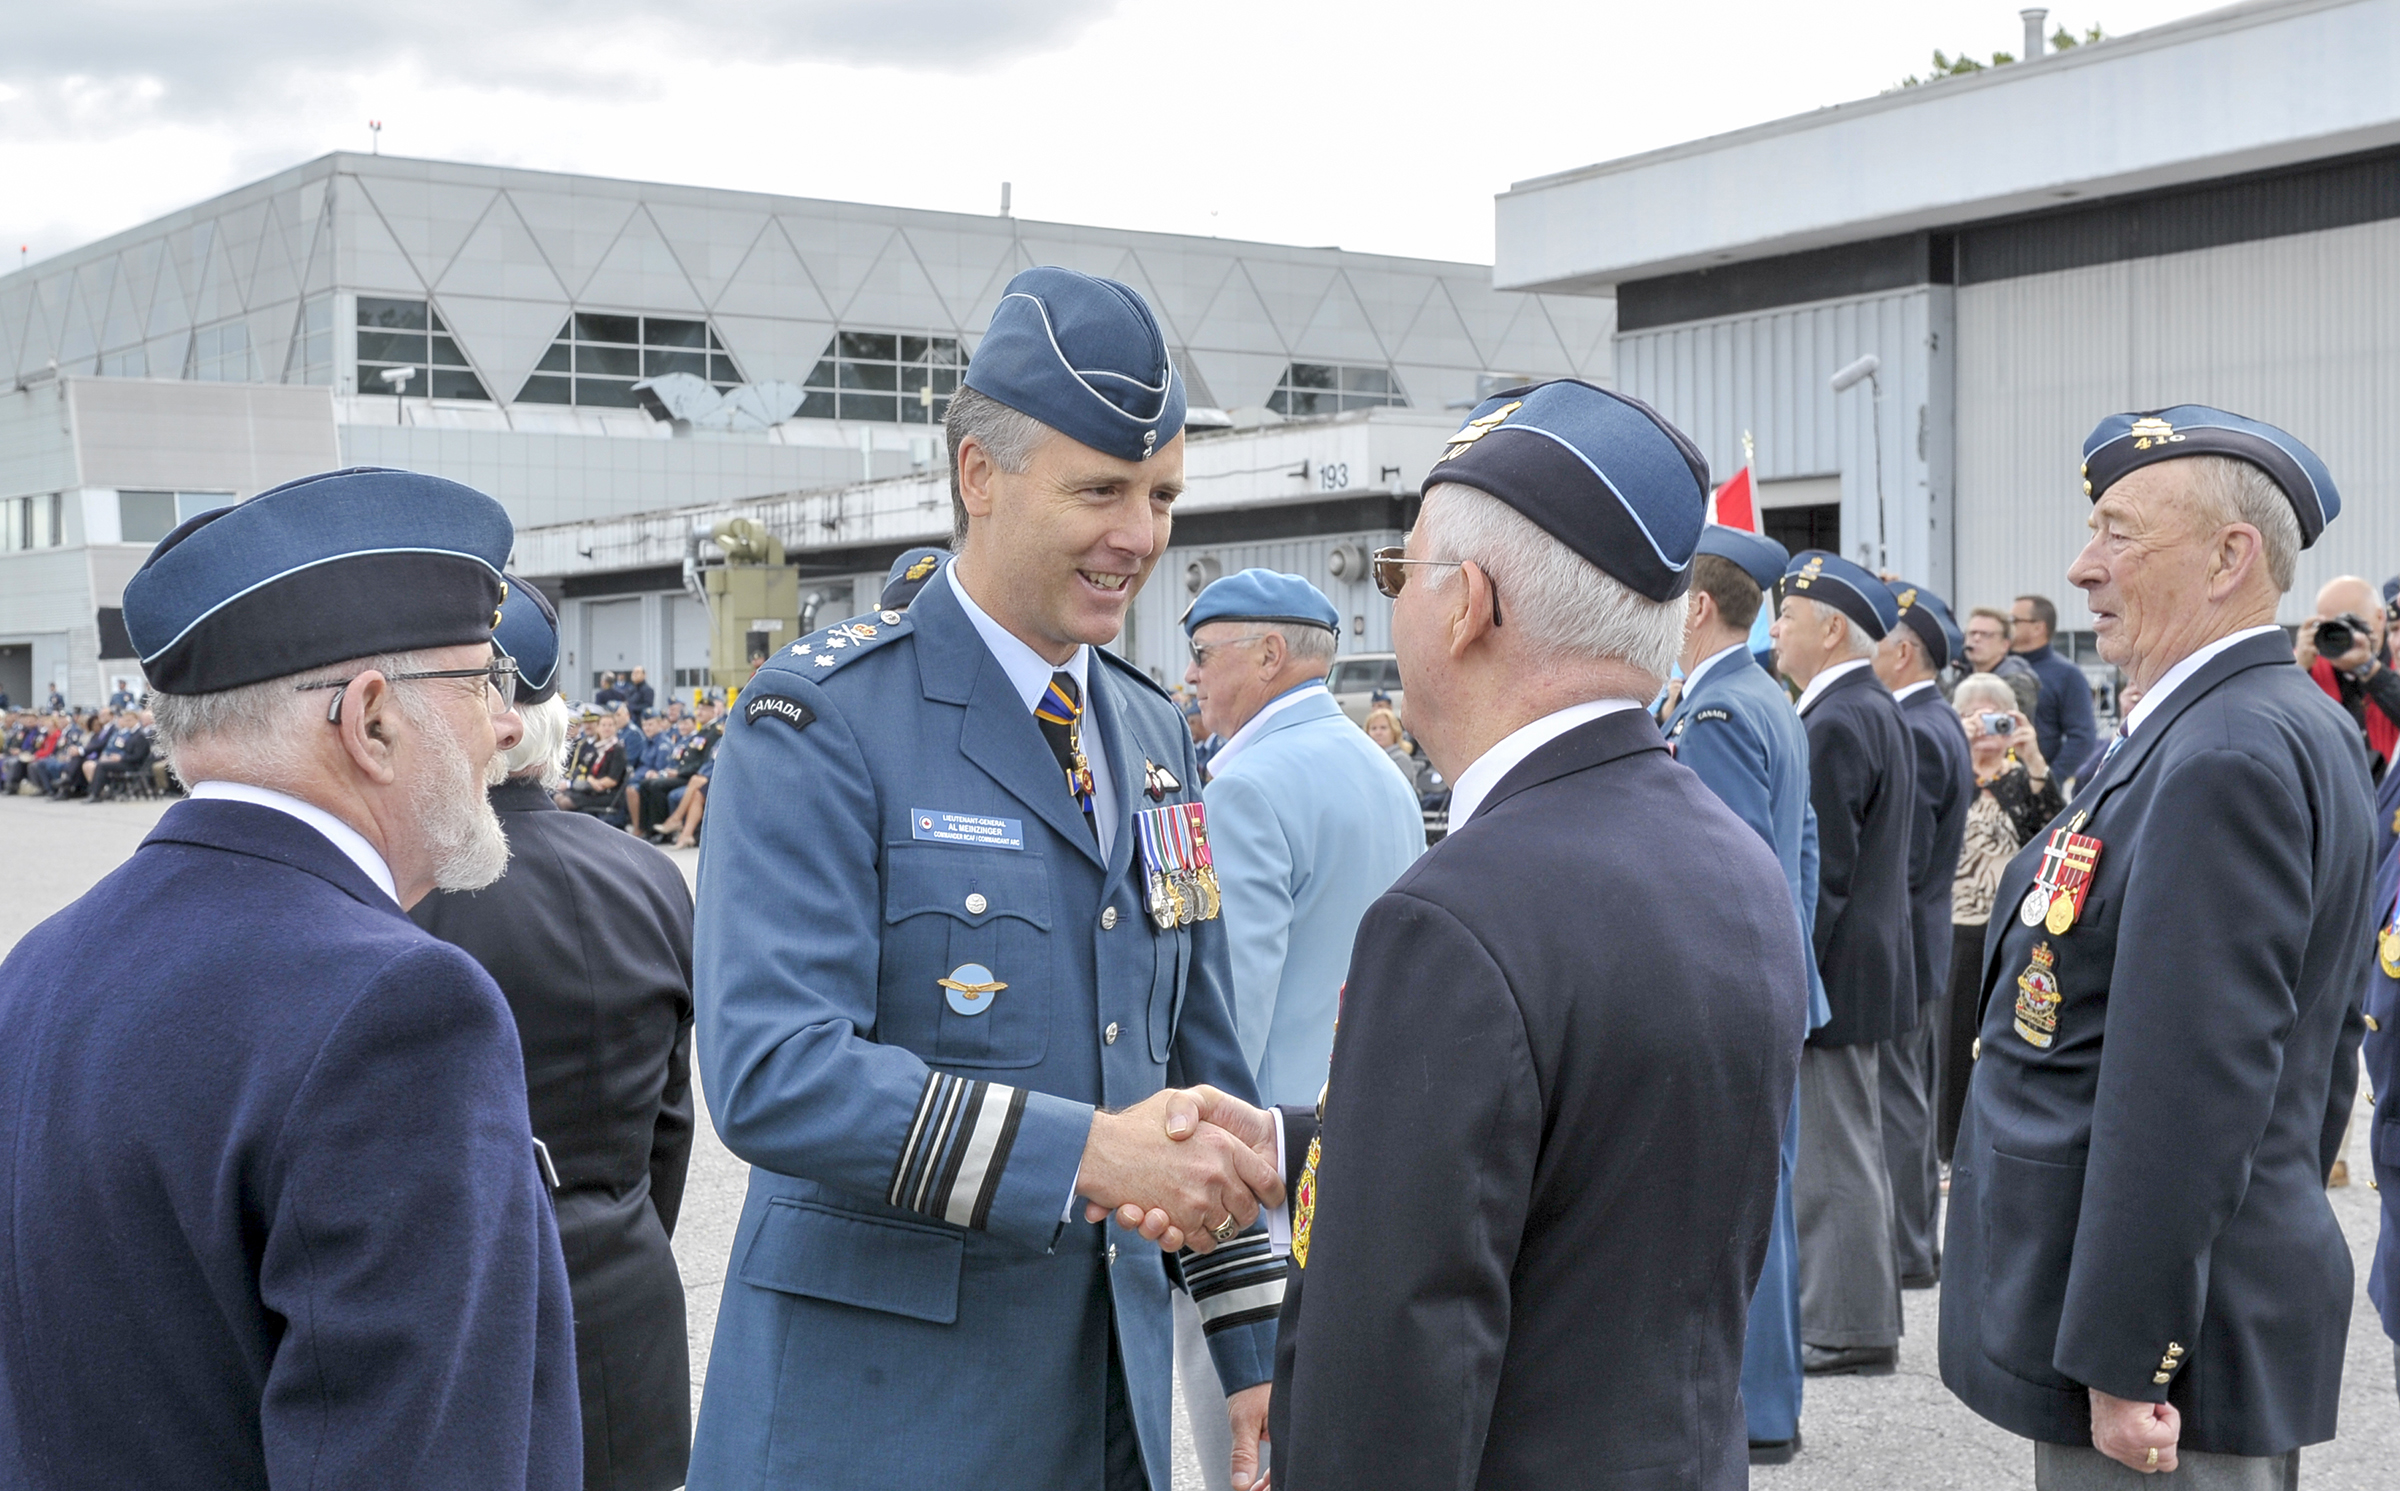 Lieutenant-General Al Meinzinger, commander of the RCAF, shakes hands with a veteran during the inspection of the parade during the national Battle of Britain parade held September 15, 2019, at the Canada Aviation and Space Museum in Ottawa, Ontario. PHOTO: Aviator Jacob Hanlon, FA01-2019-0008-003-cropped